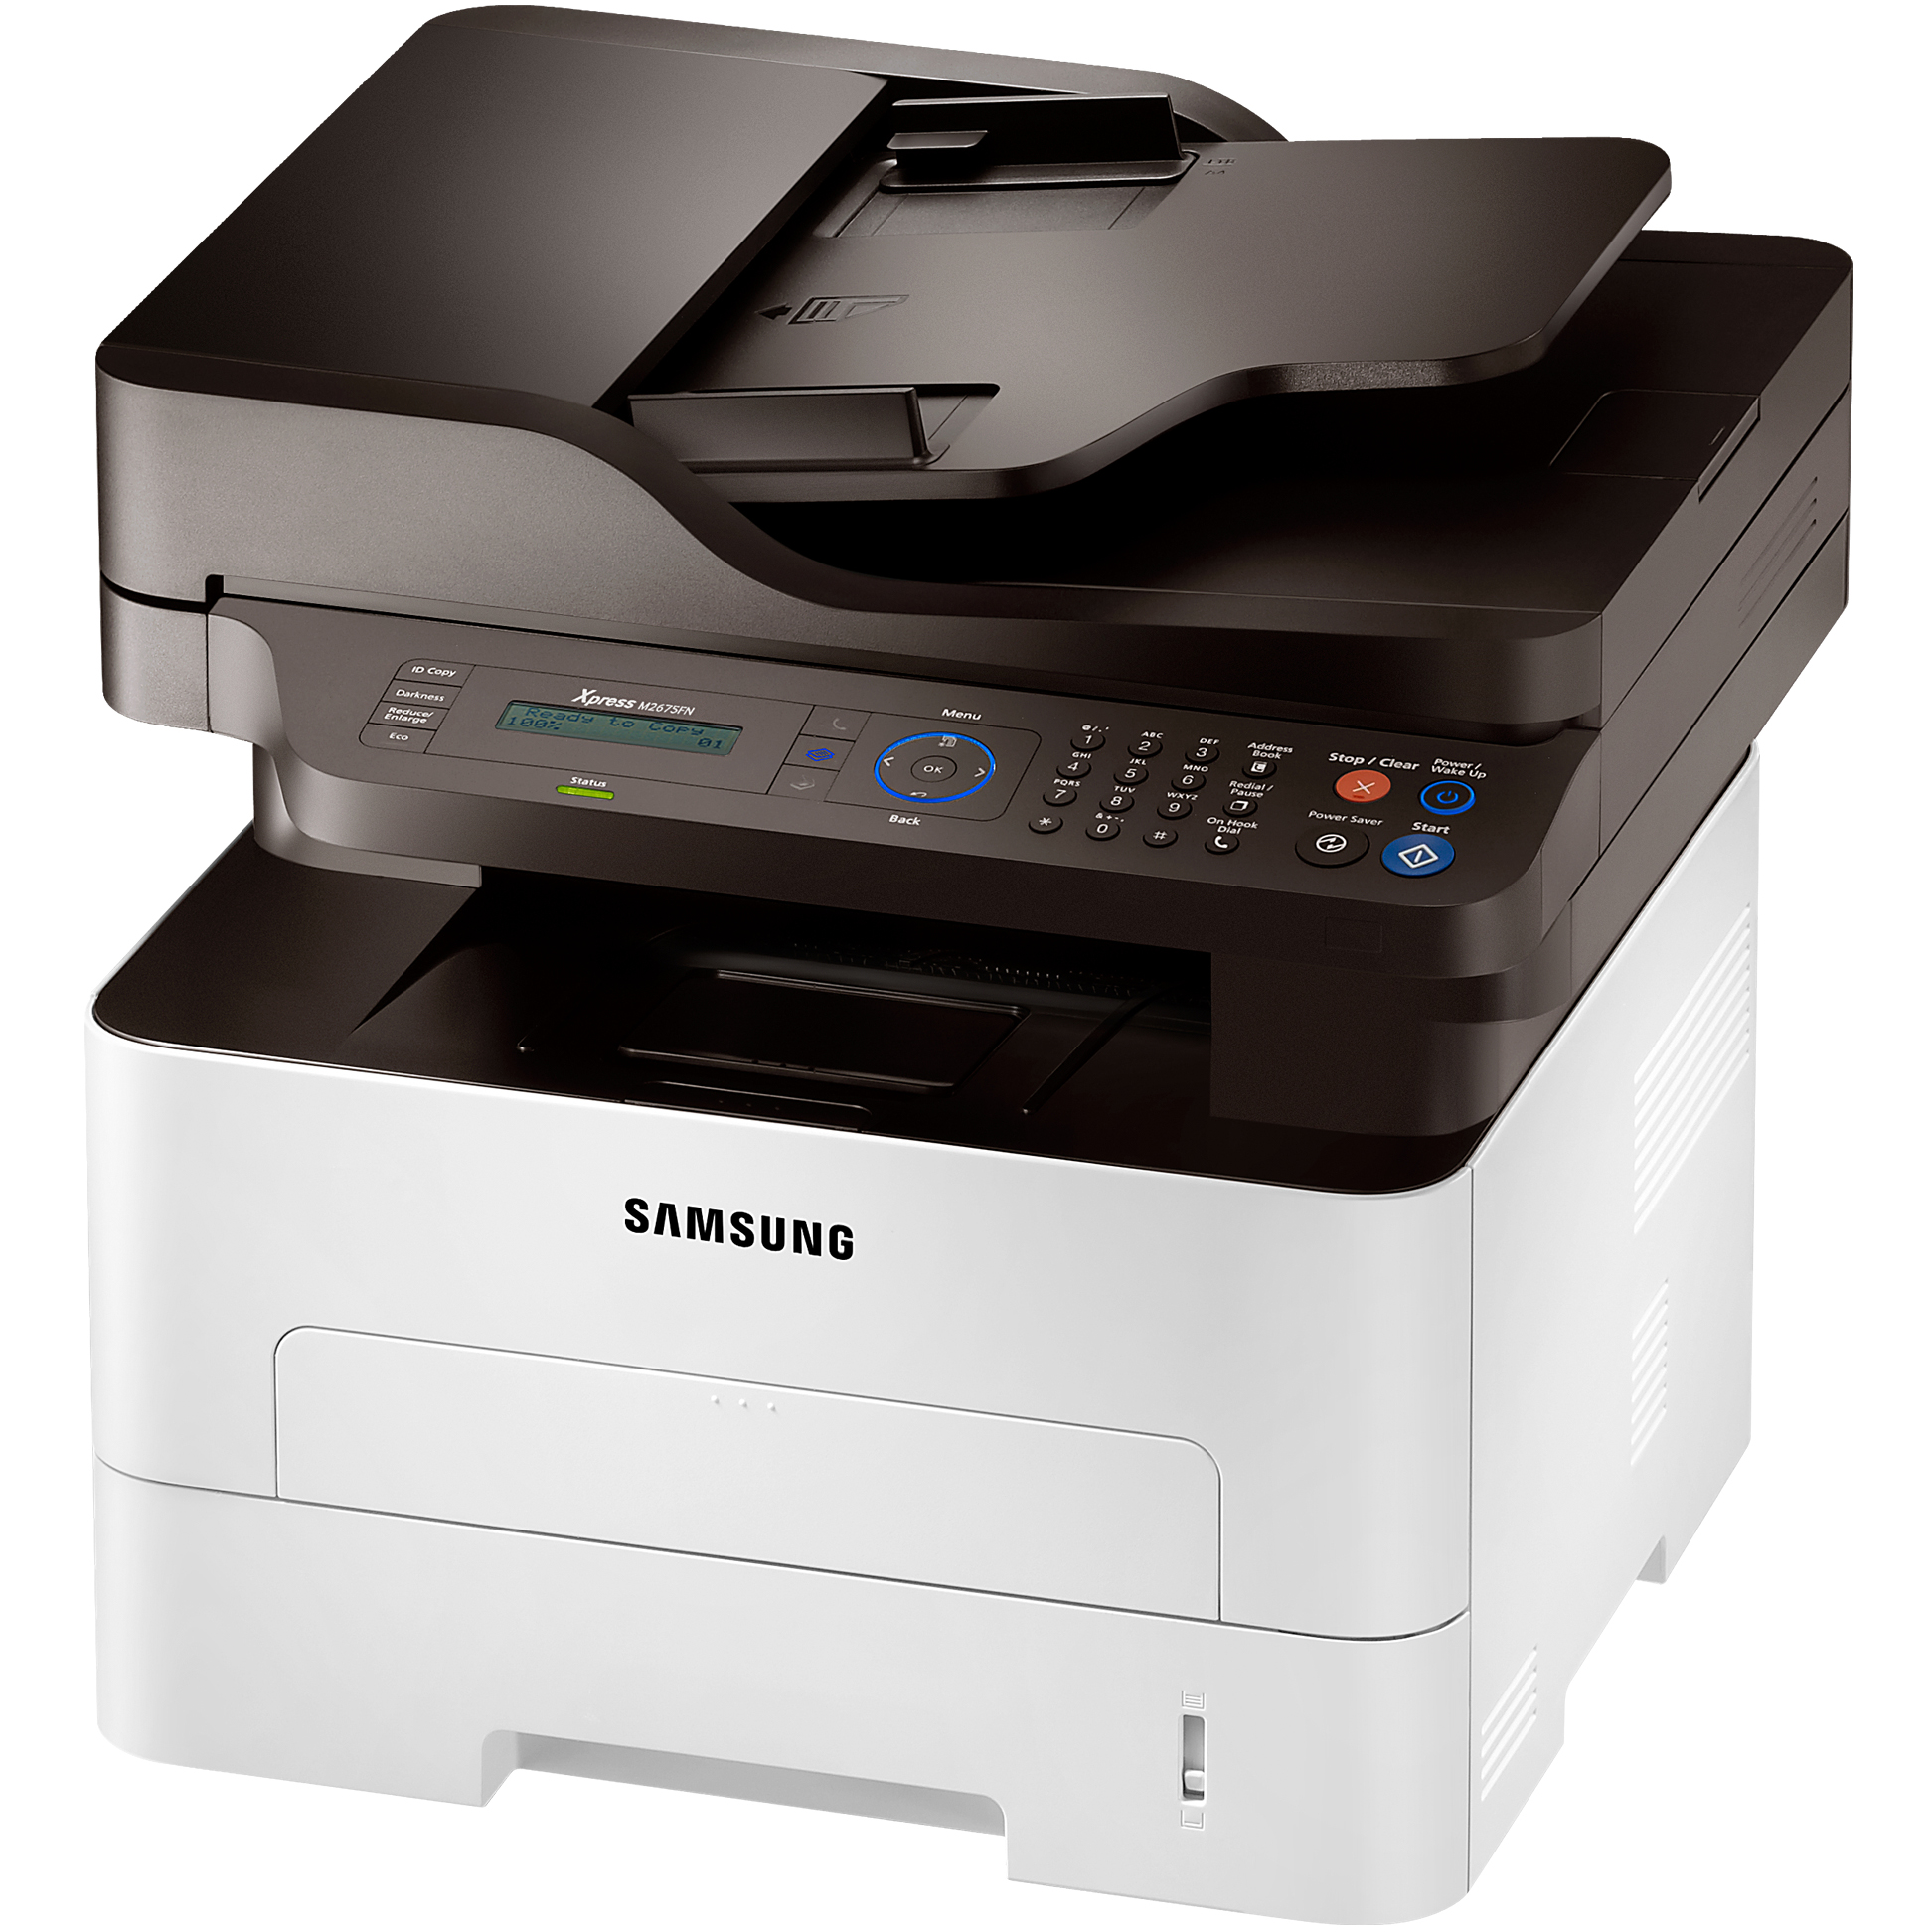 To create fix firmware reset for printers Samsung Xpress SL M2676 F FN /  M2876 FD FW / M2676N M2876ND necessary to know printer serie (SN)